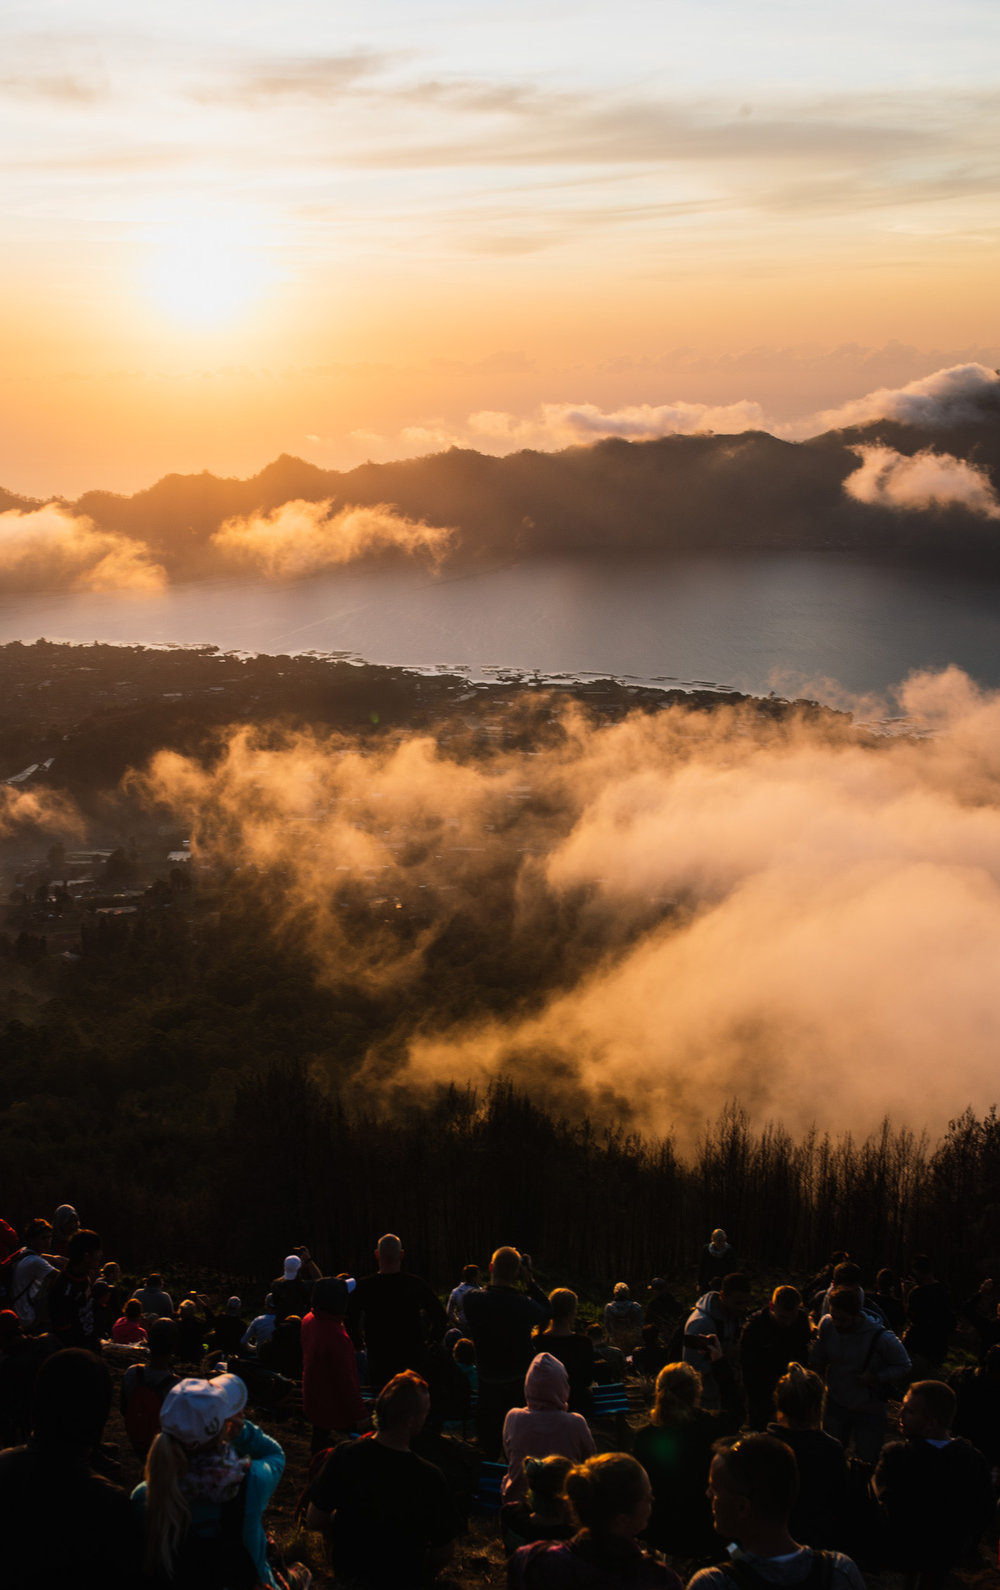 There were over 400 people who climbed this mountain to catch the sunrise.  Photo Credit: Joe Na (www.joenagraphy.com)